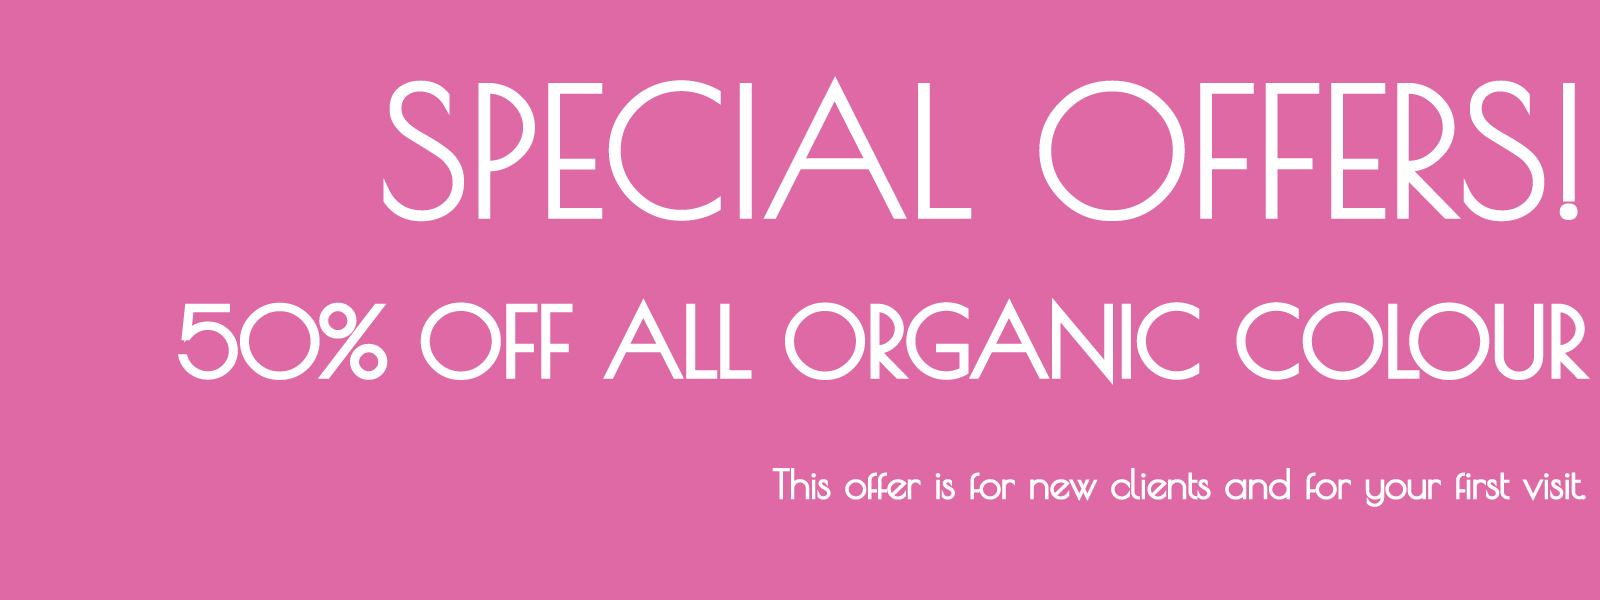 special offer on organic hair colour